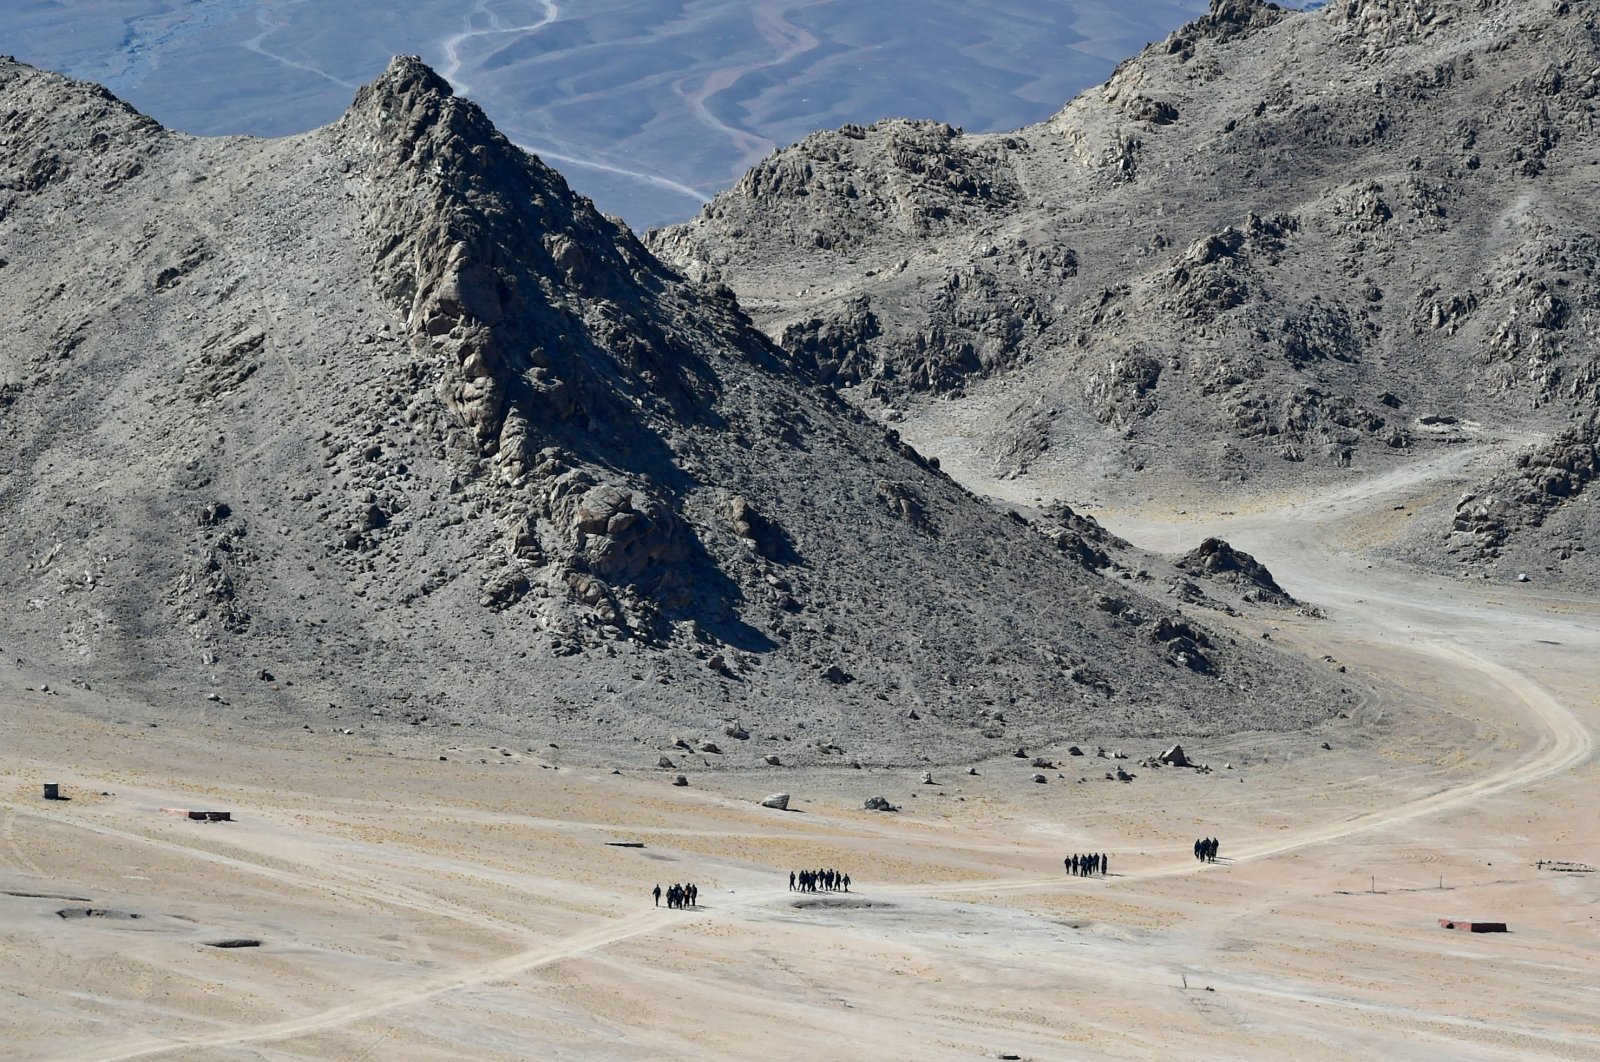 Indian soldiers walk at the foothills of a mountain range near Leh on June 23, 2020. (AFP Photo)